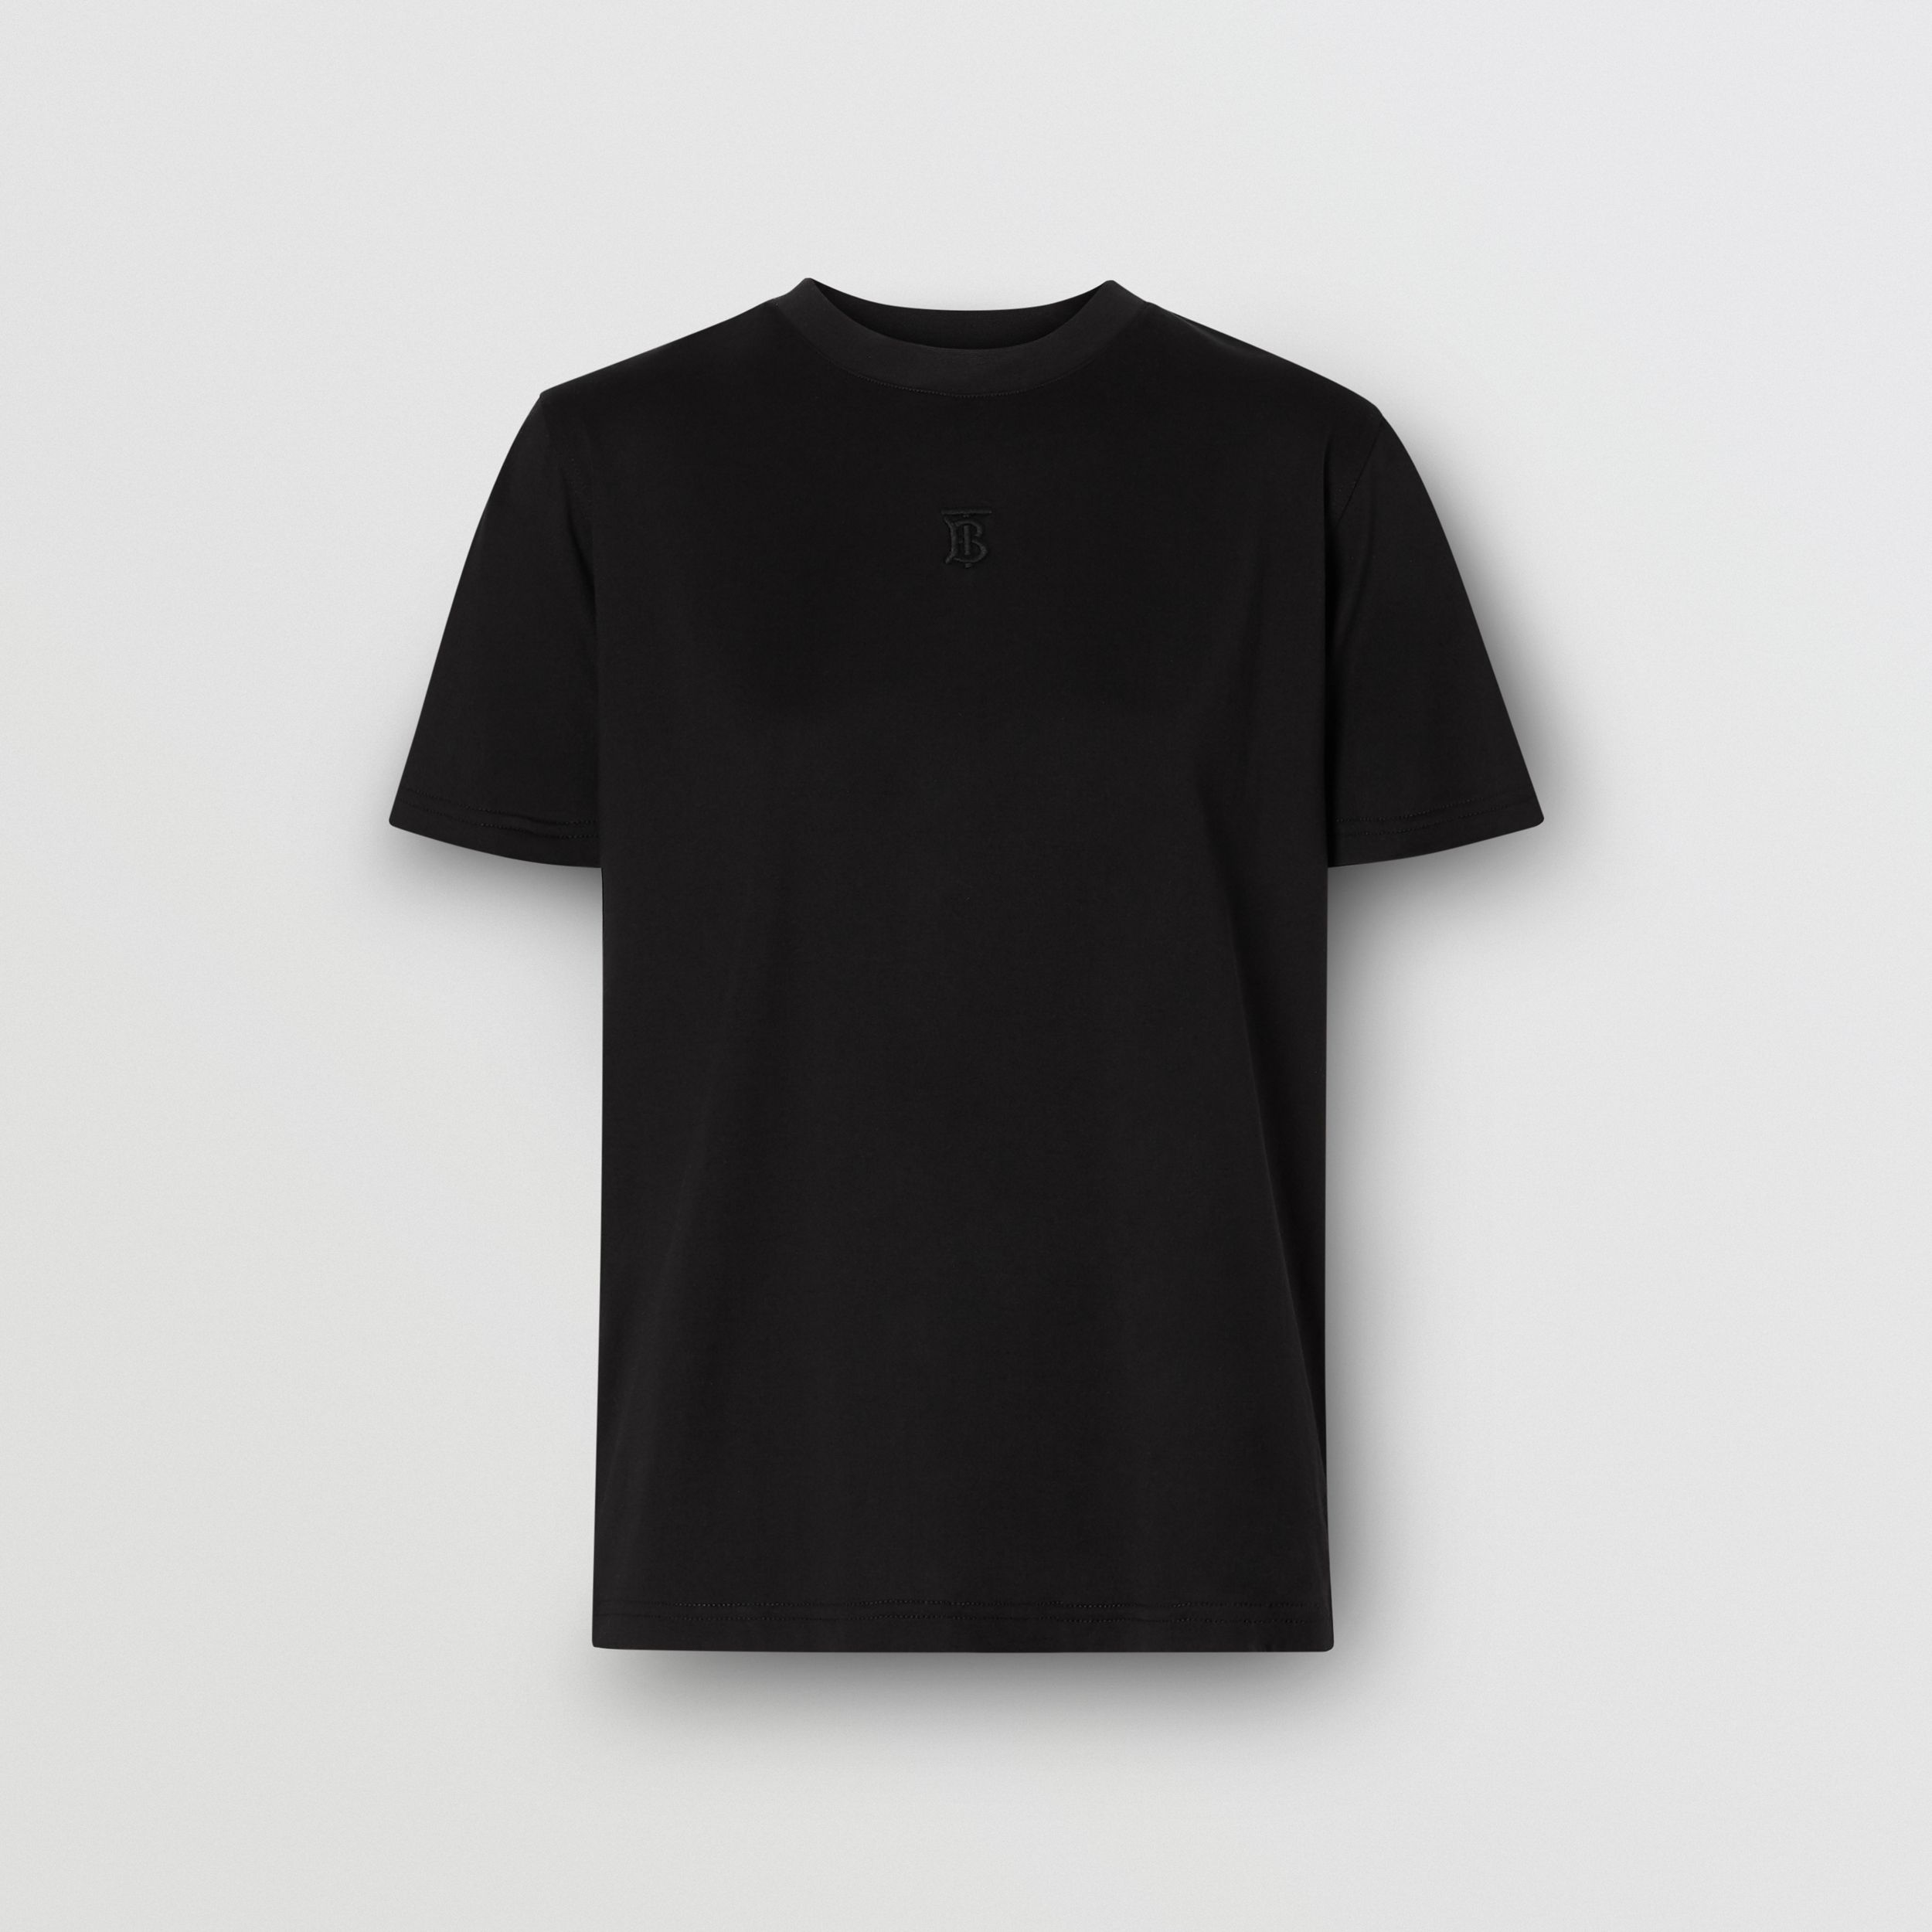 Monogram Motif Cotton T-shirt in Black - Women | Burberry - 4